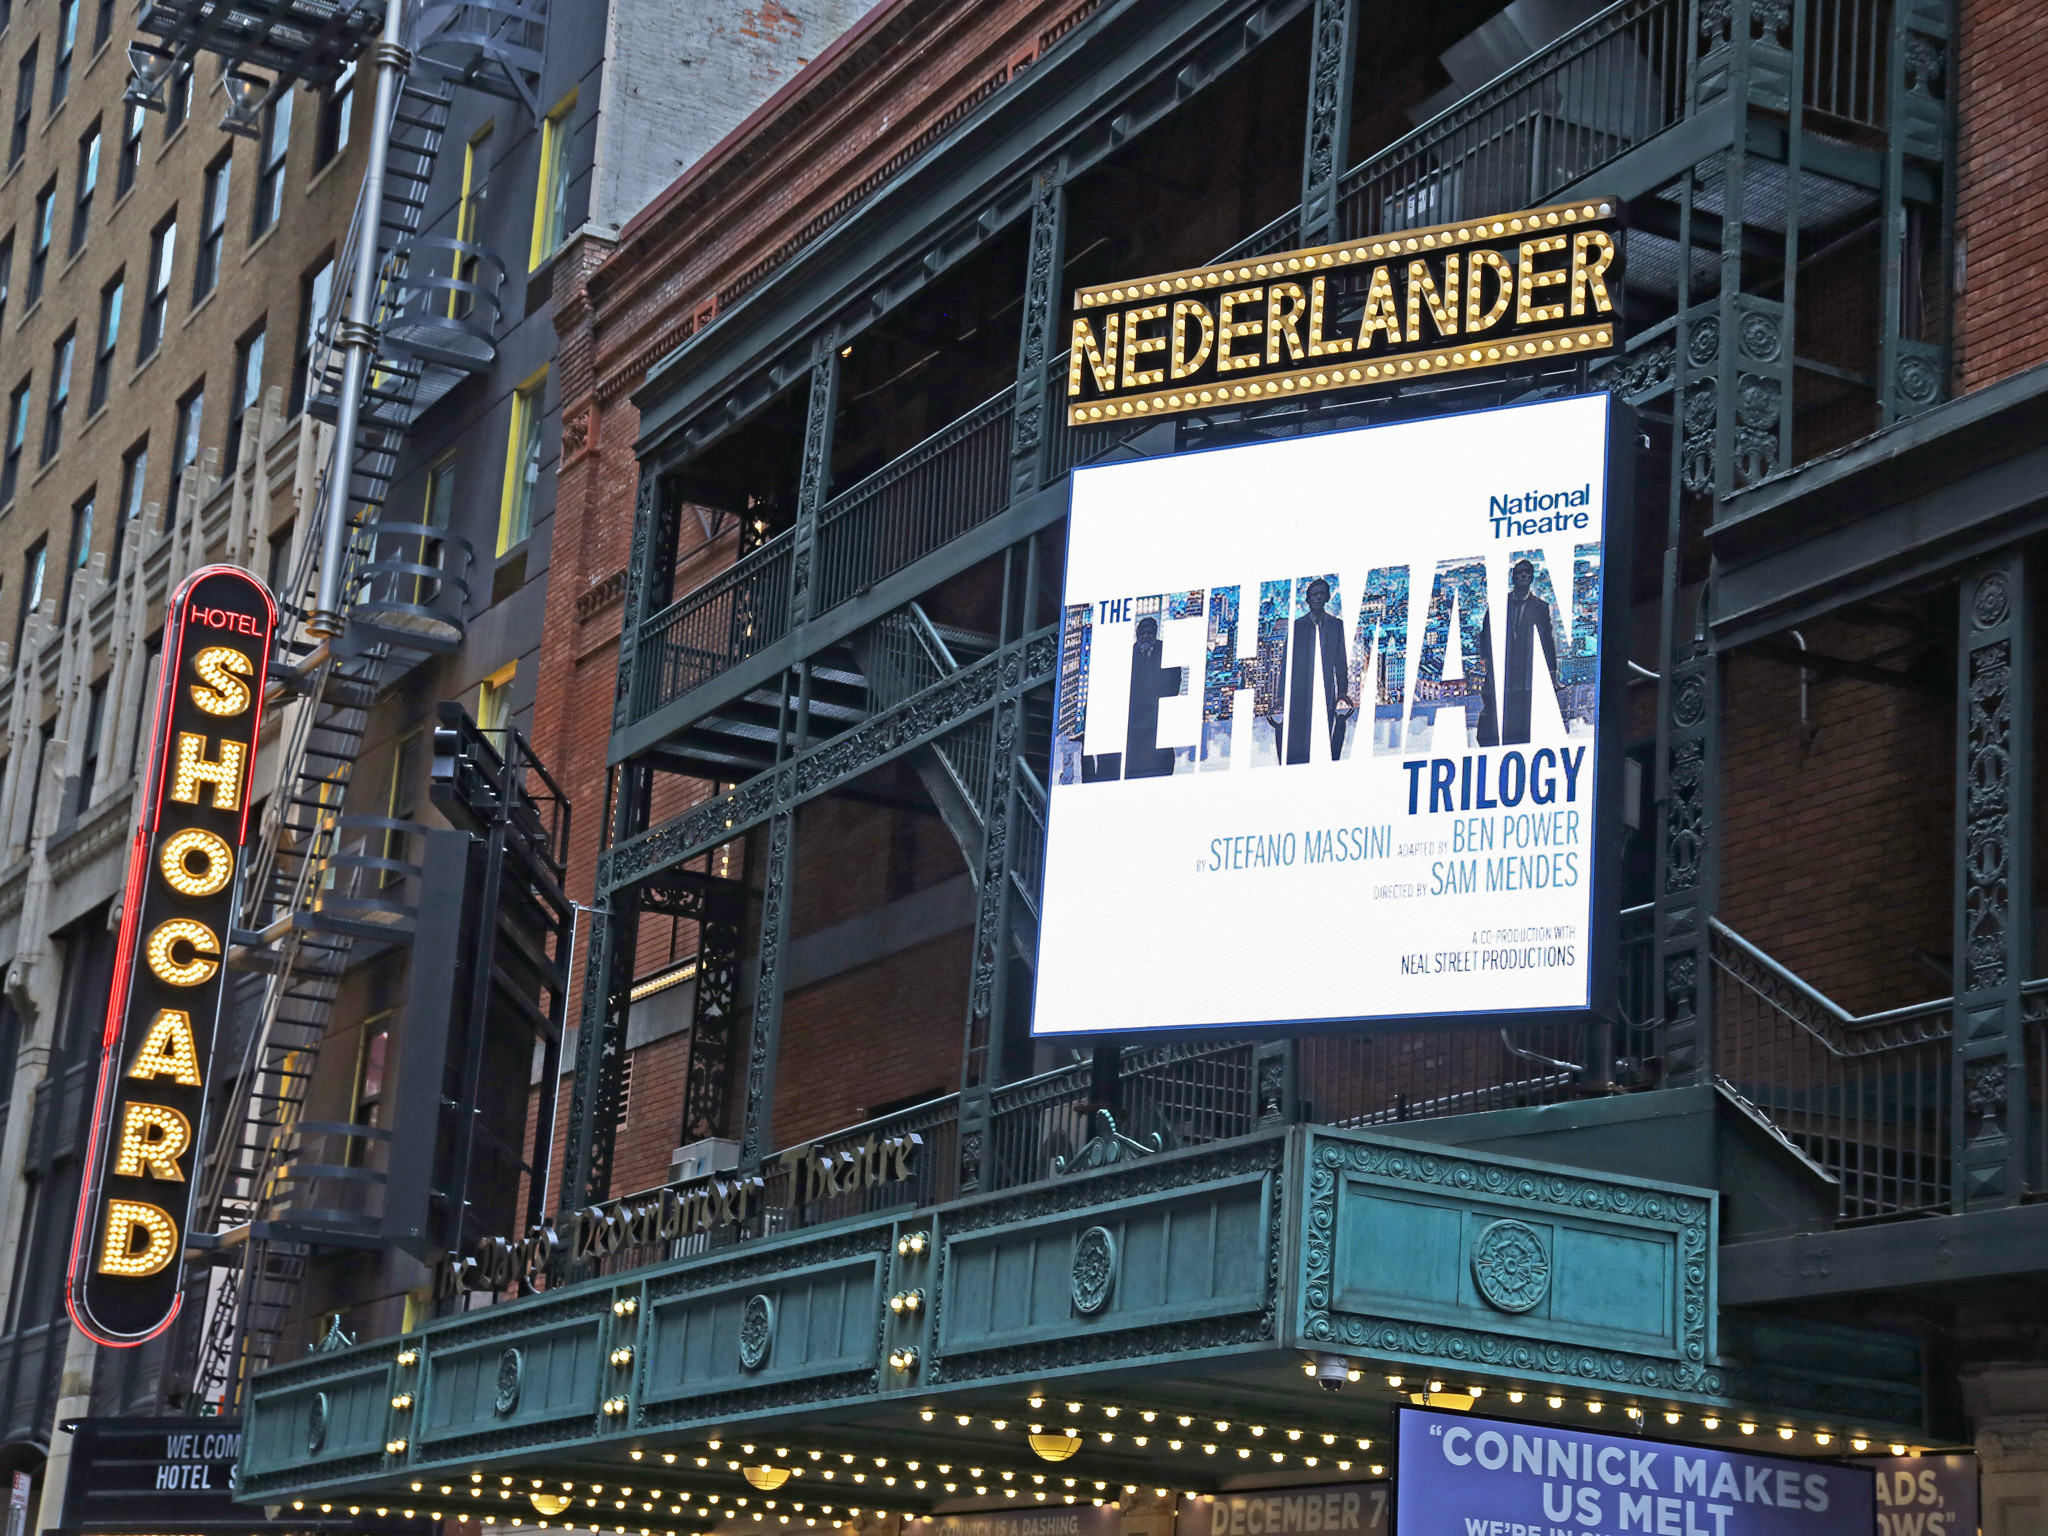 The Lehman Trilogy at the Nederlander Theatre